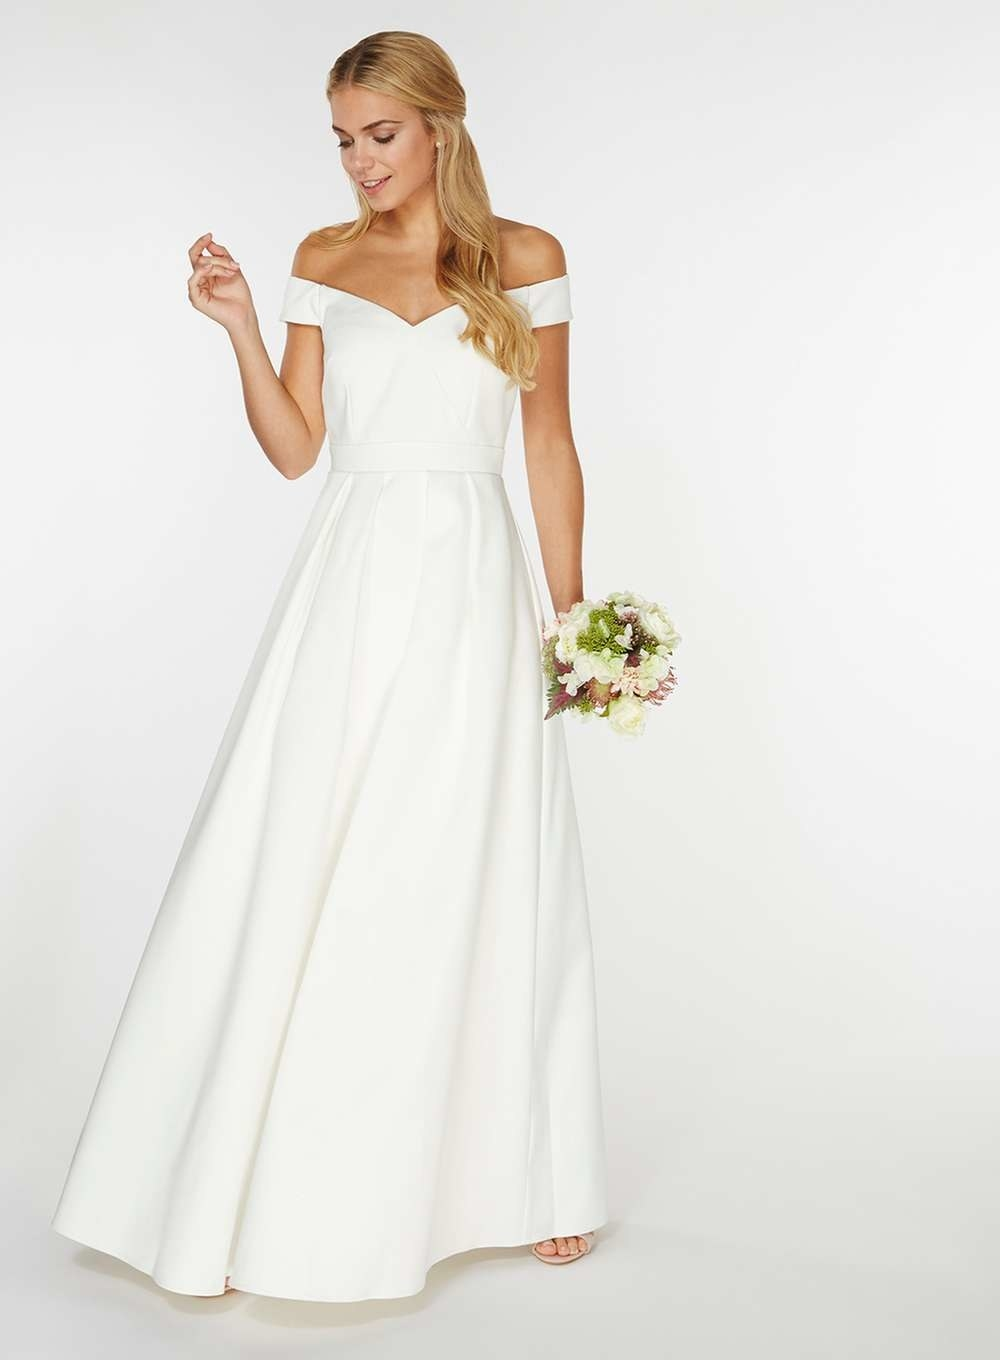 eebf9778849 14 Of The Best Places To Buy An Affordable Wedding Dress Online